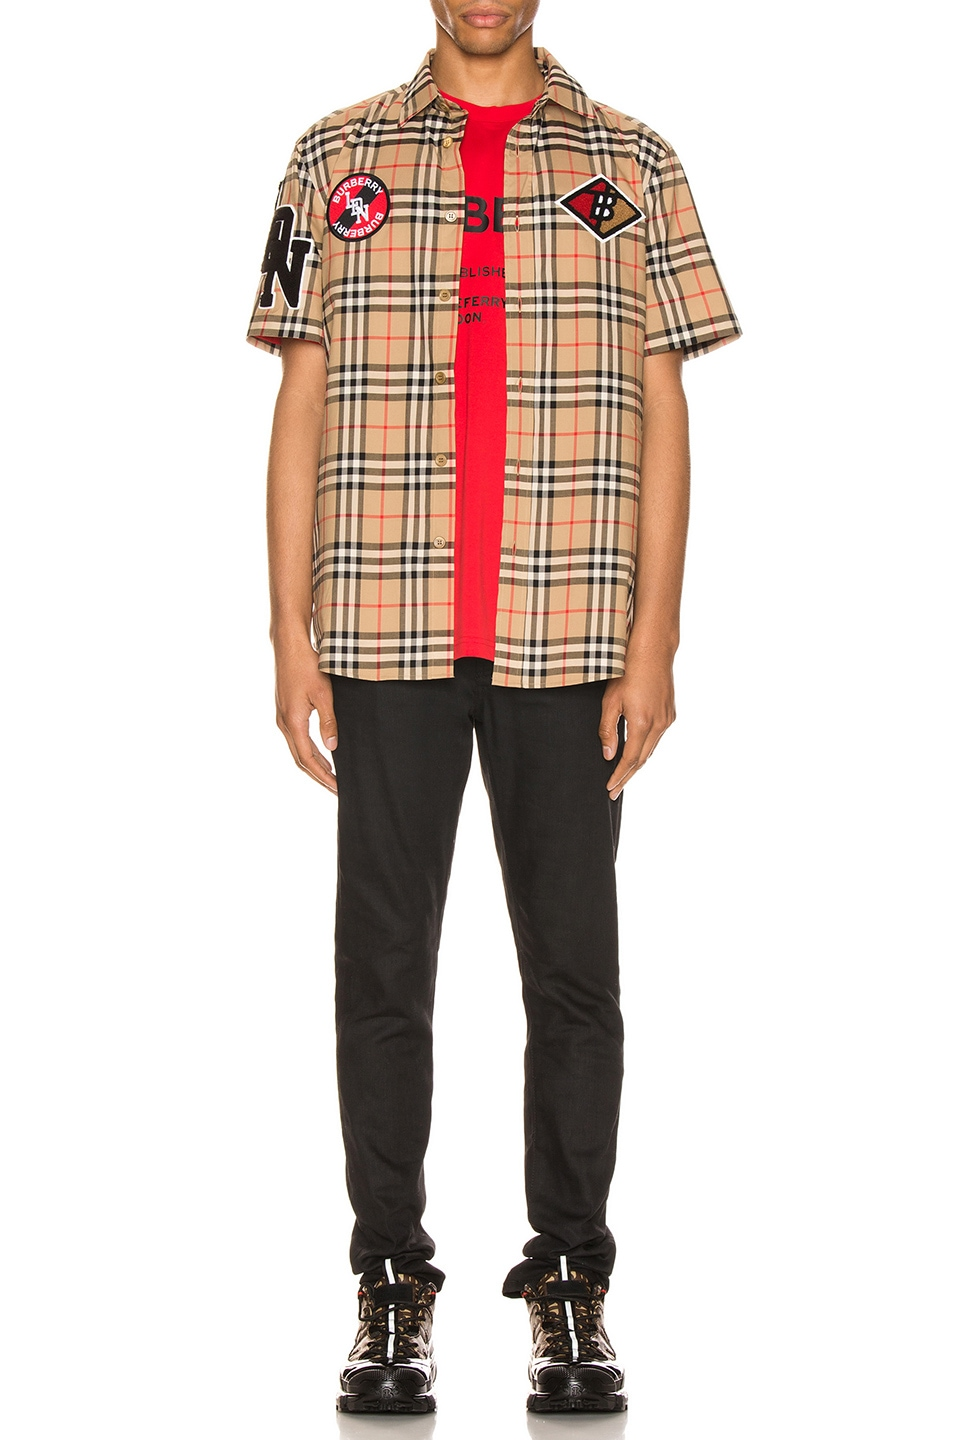 Image 5 of Burberry Combe Short Sleeve Shirt in Archive Beige IP Check